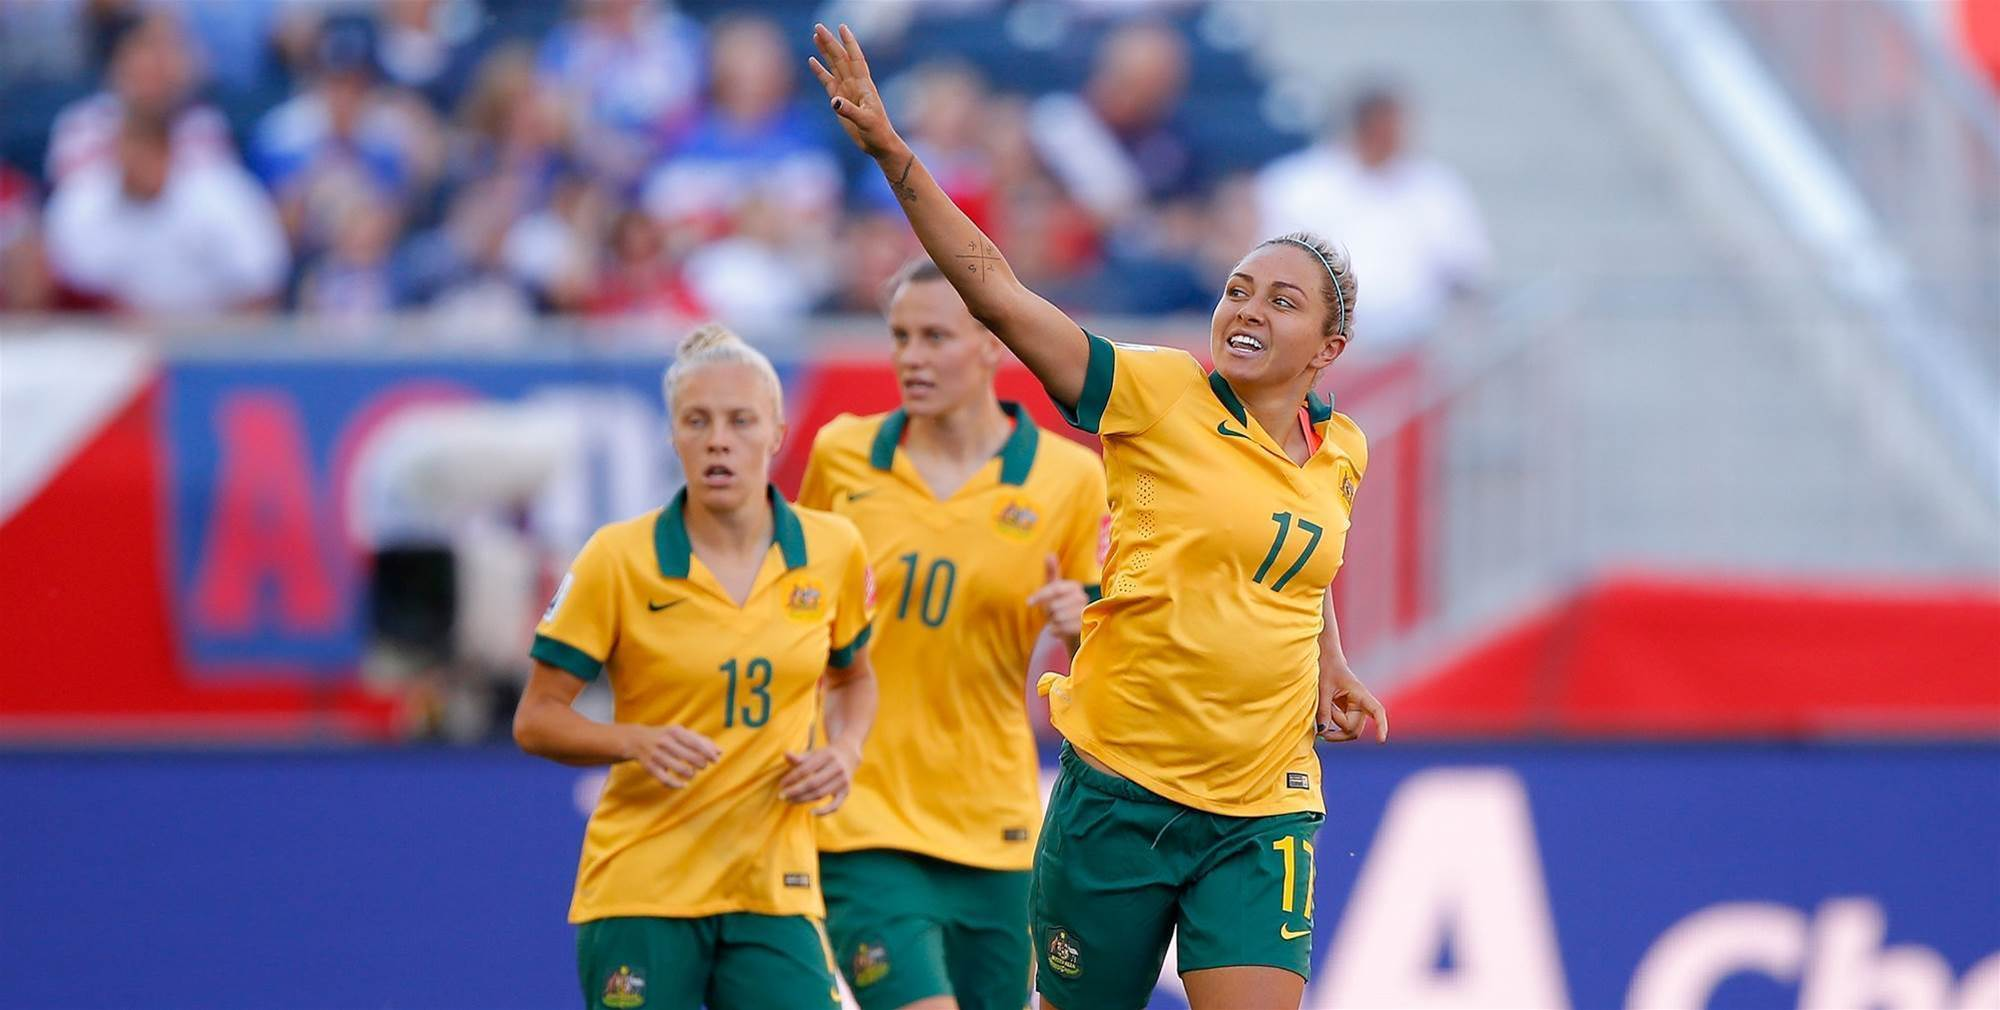 Australia bid to host Women's World Cup